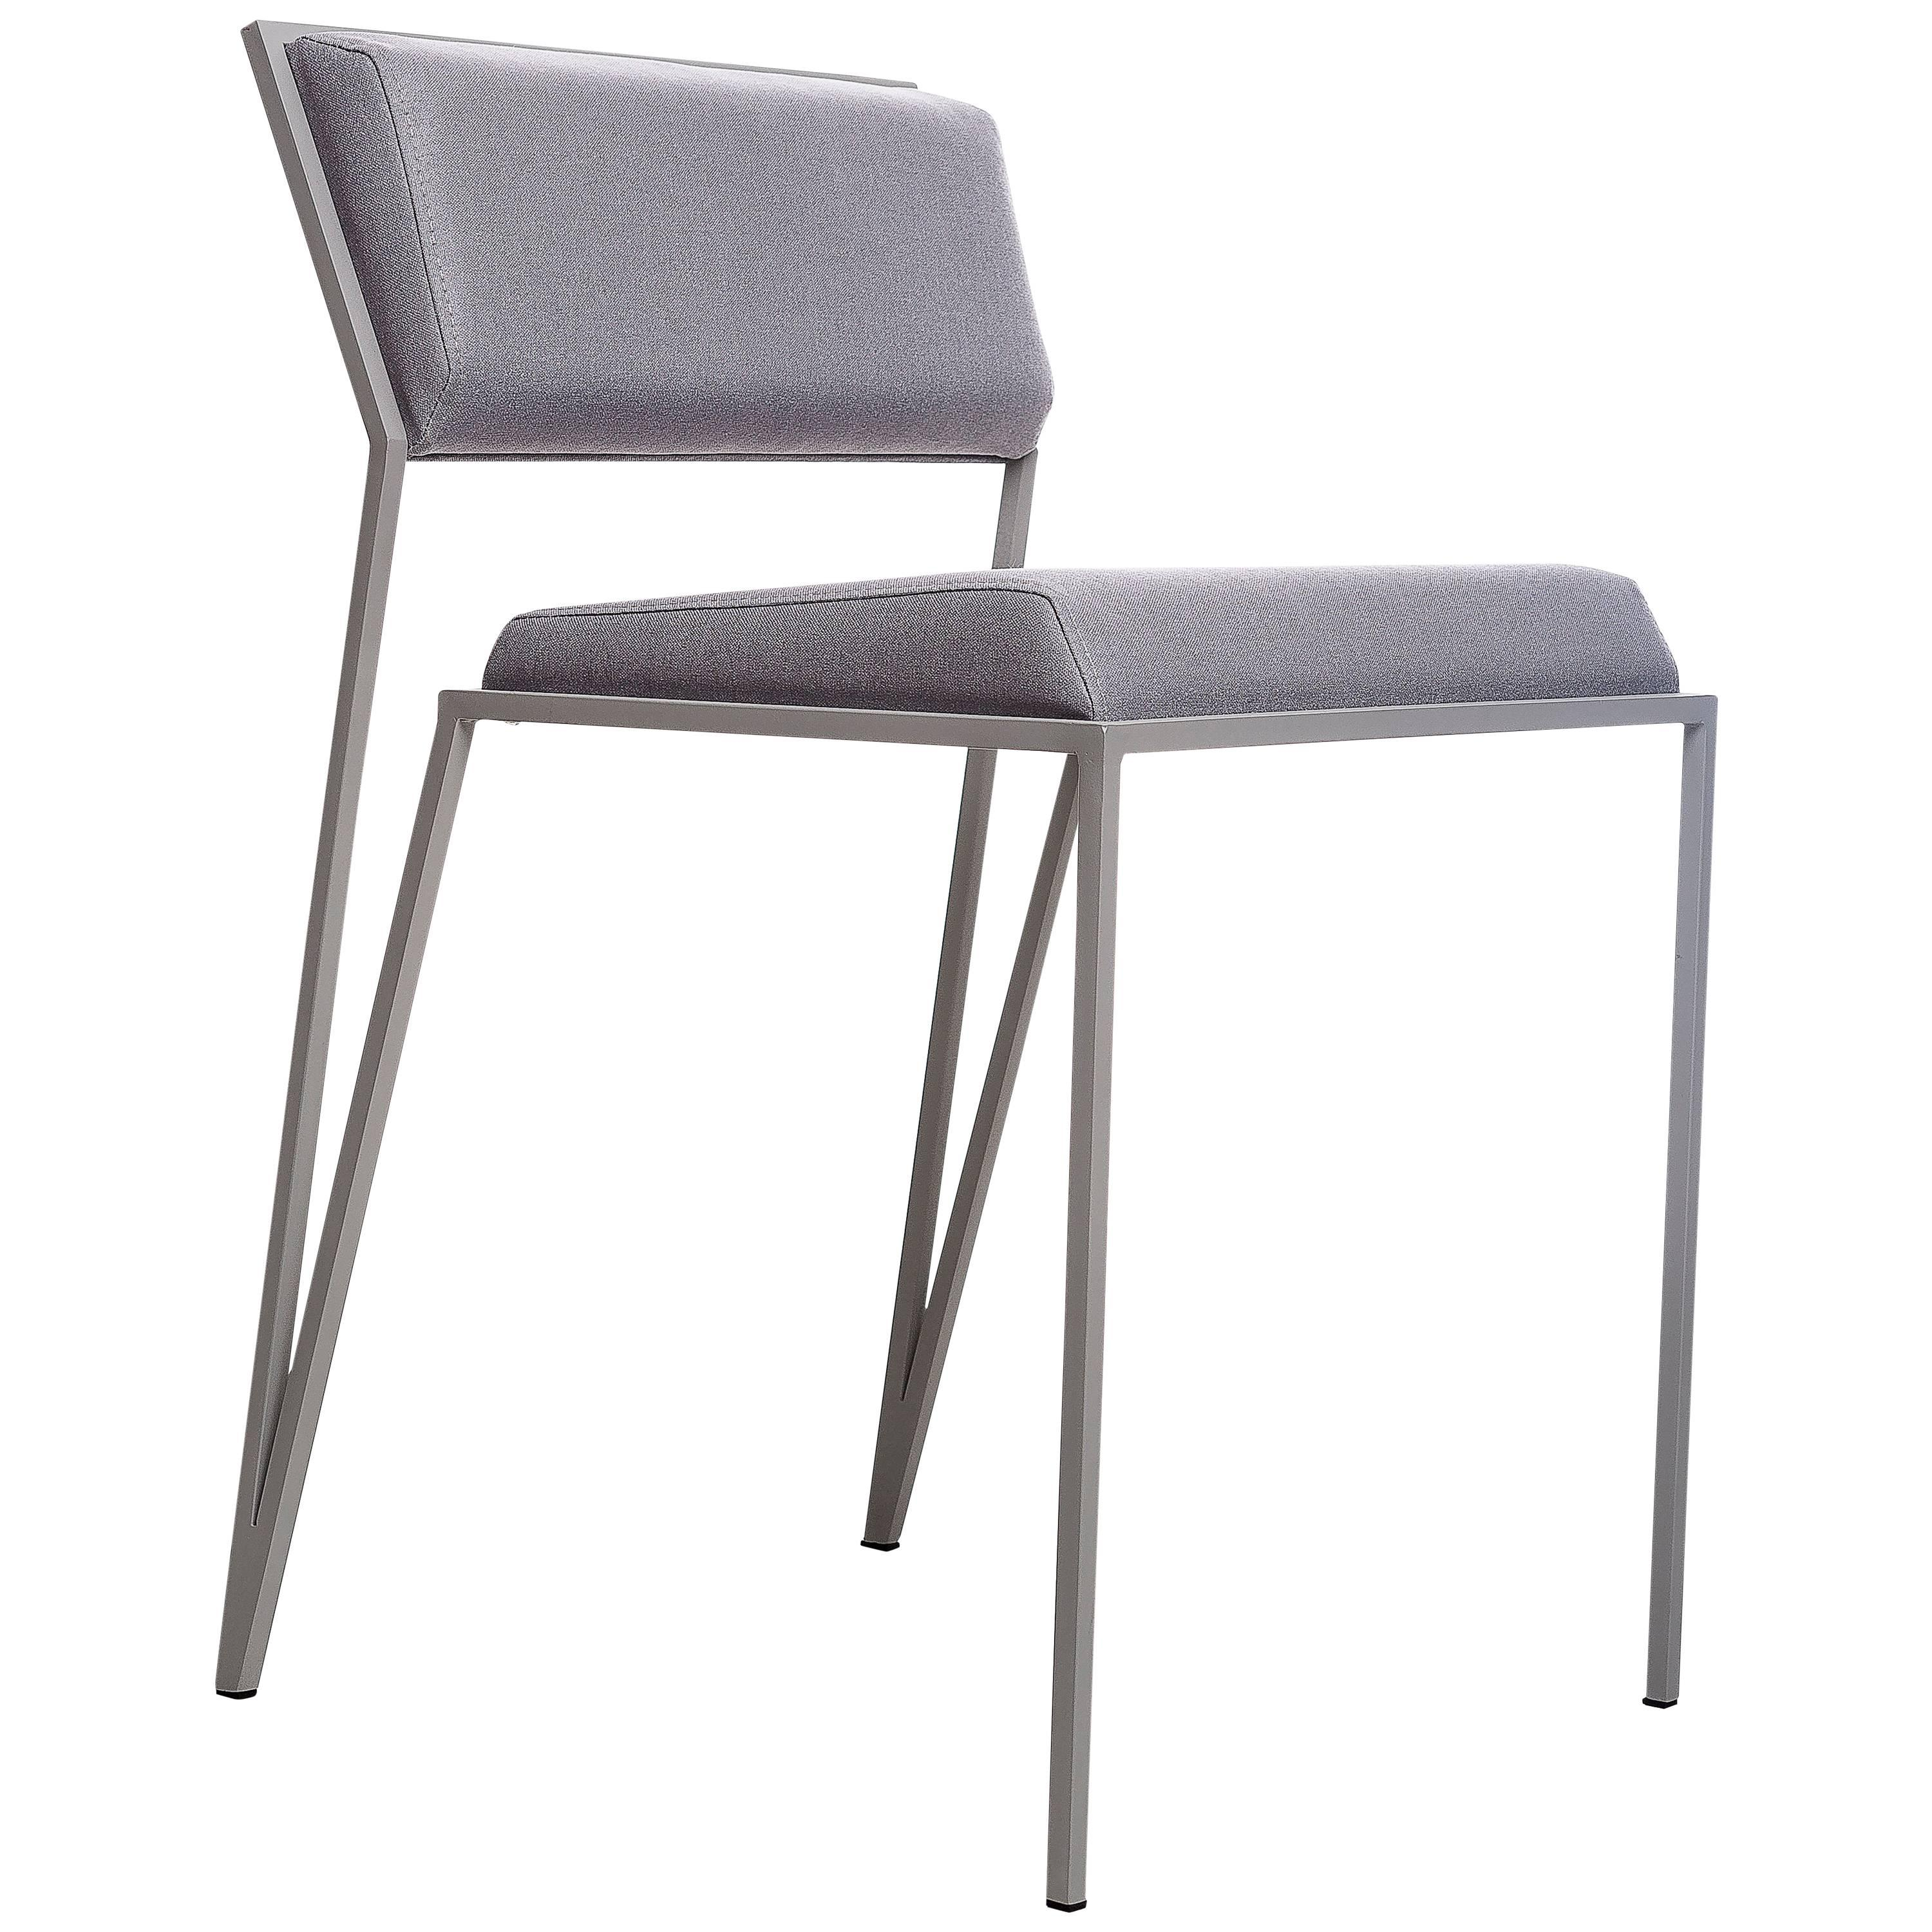 Charmant Minimalist Chair In Steel, Brazilian Contemporary Style